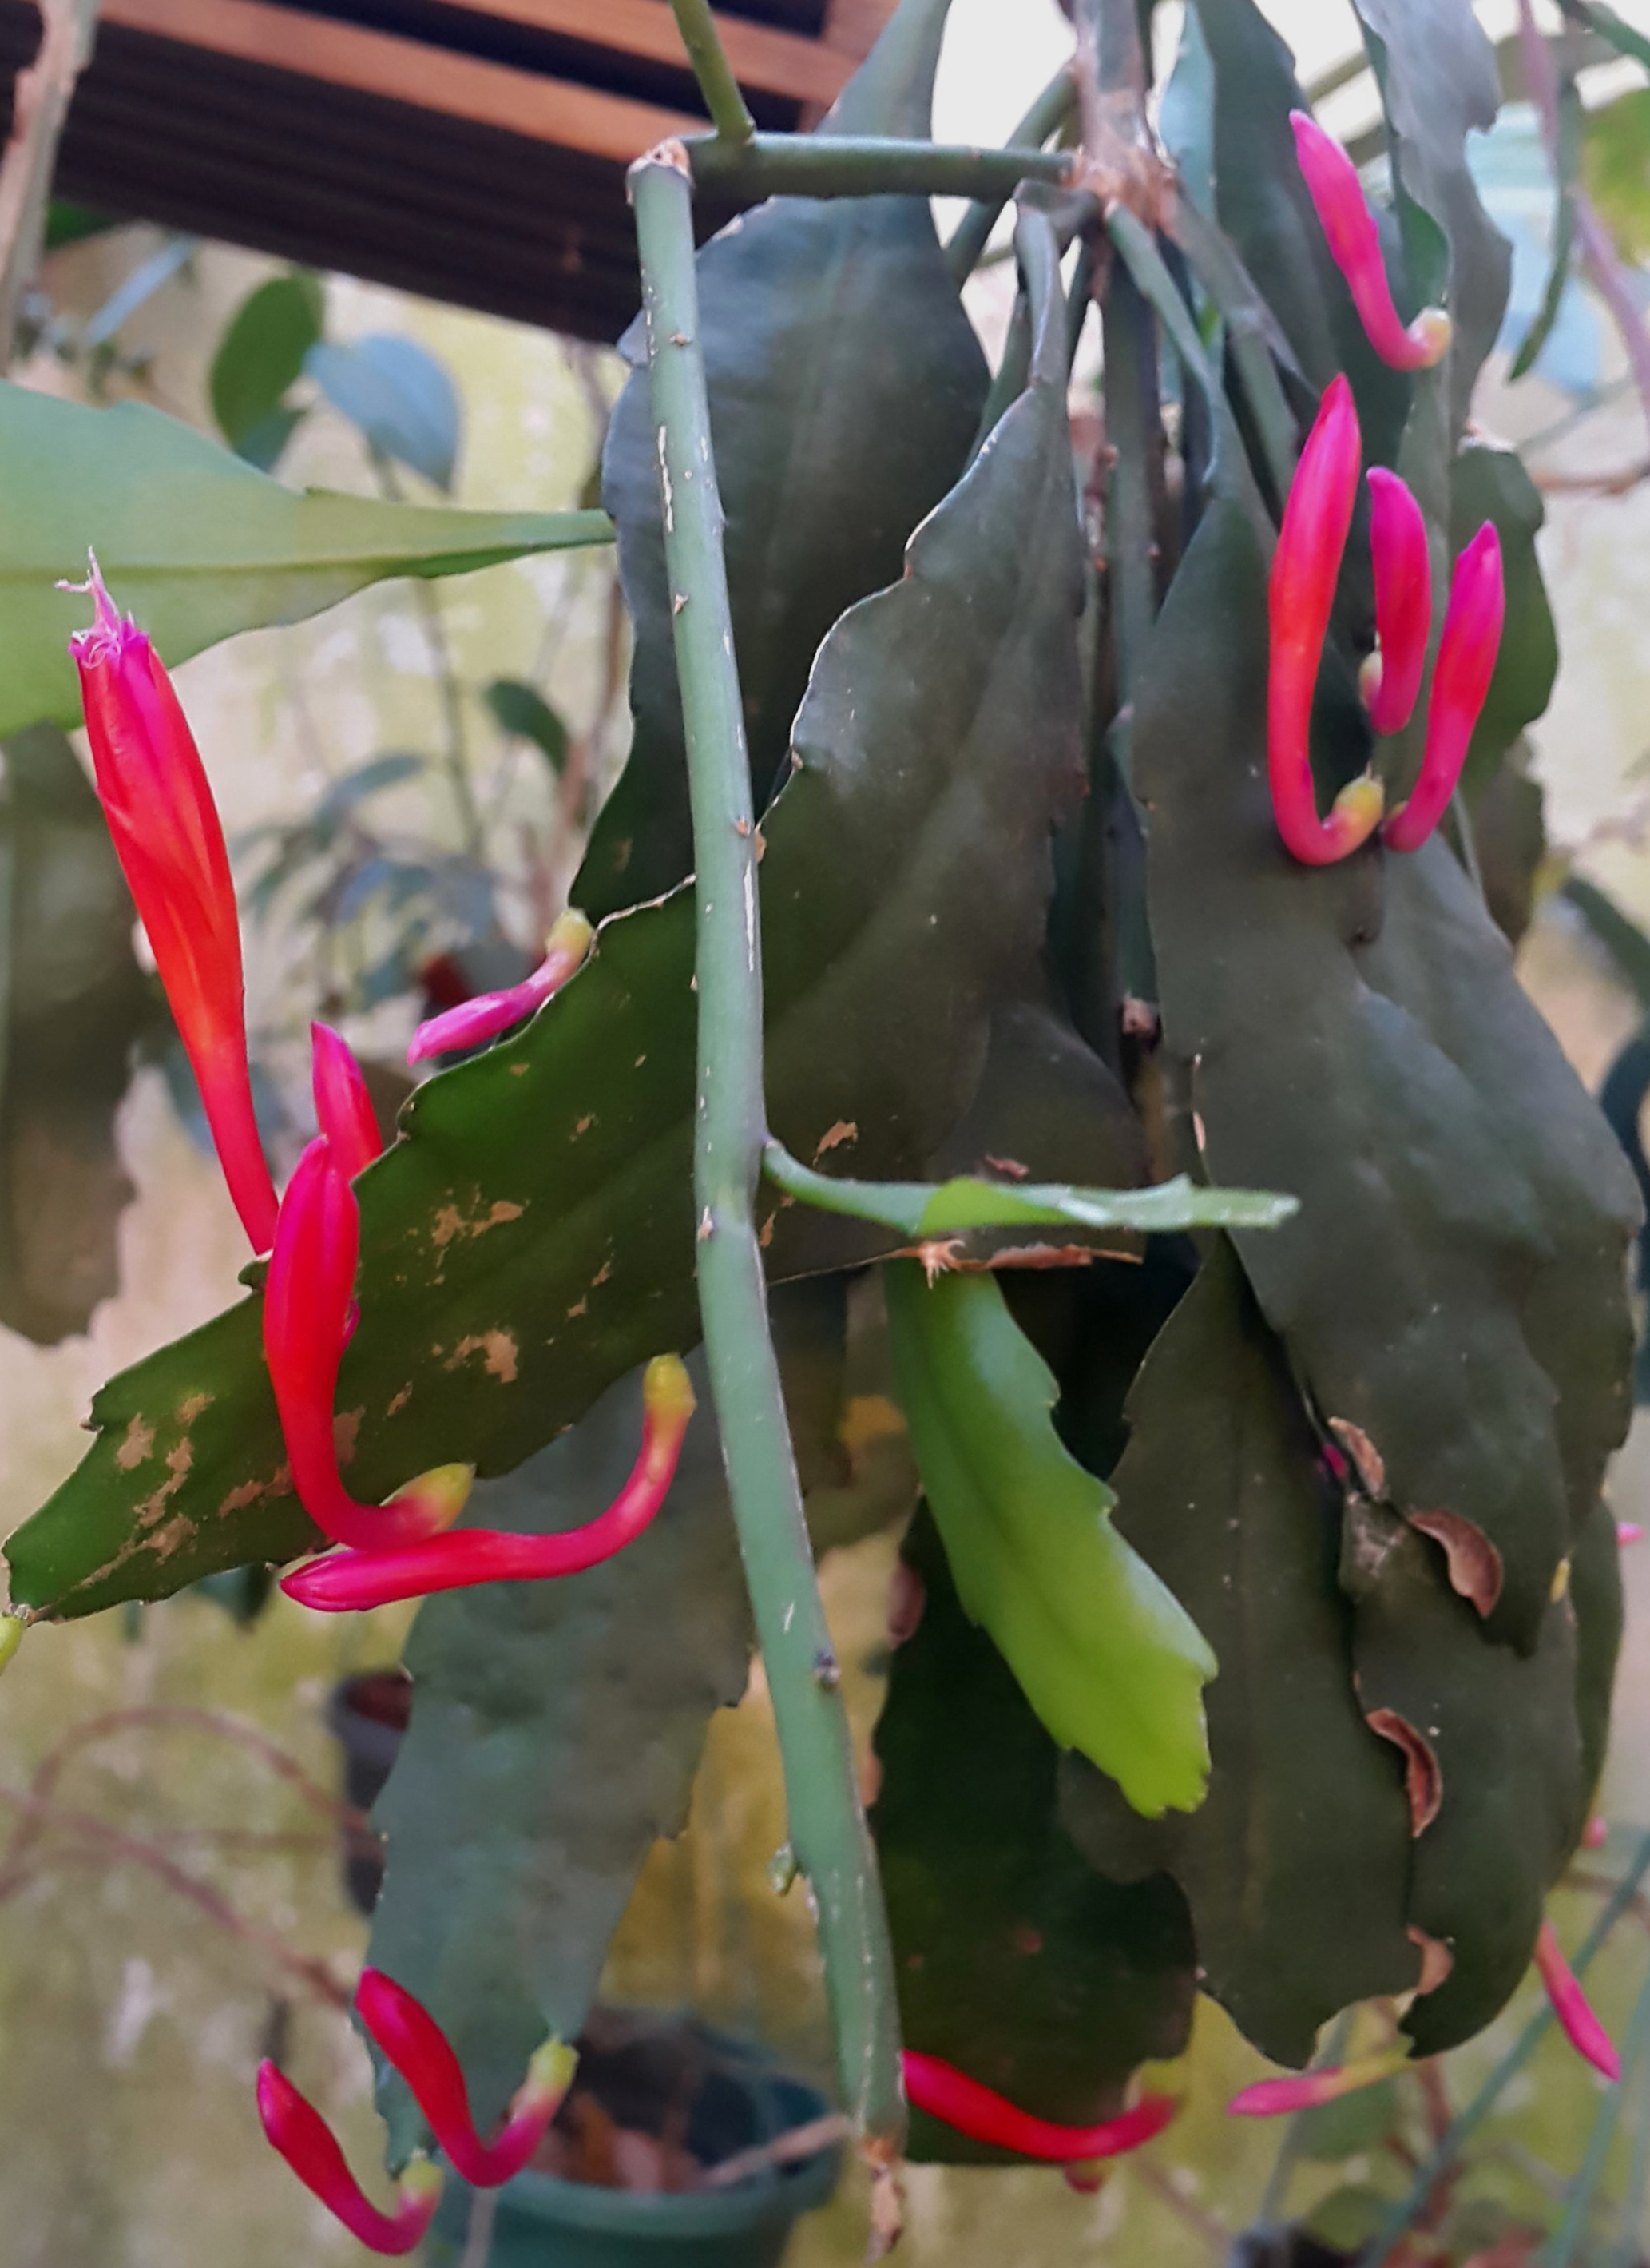 The amazing carmine-colored, magenta-tipped corollas of a cultivated  Disocactus eichlamii . Grower and image: J.J. Castillo.